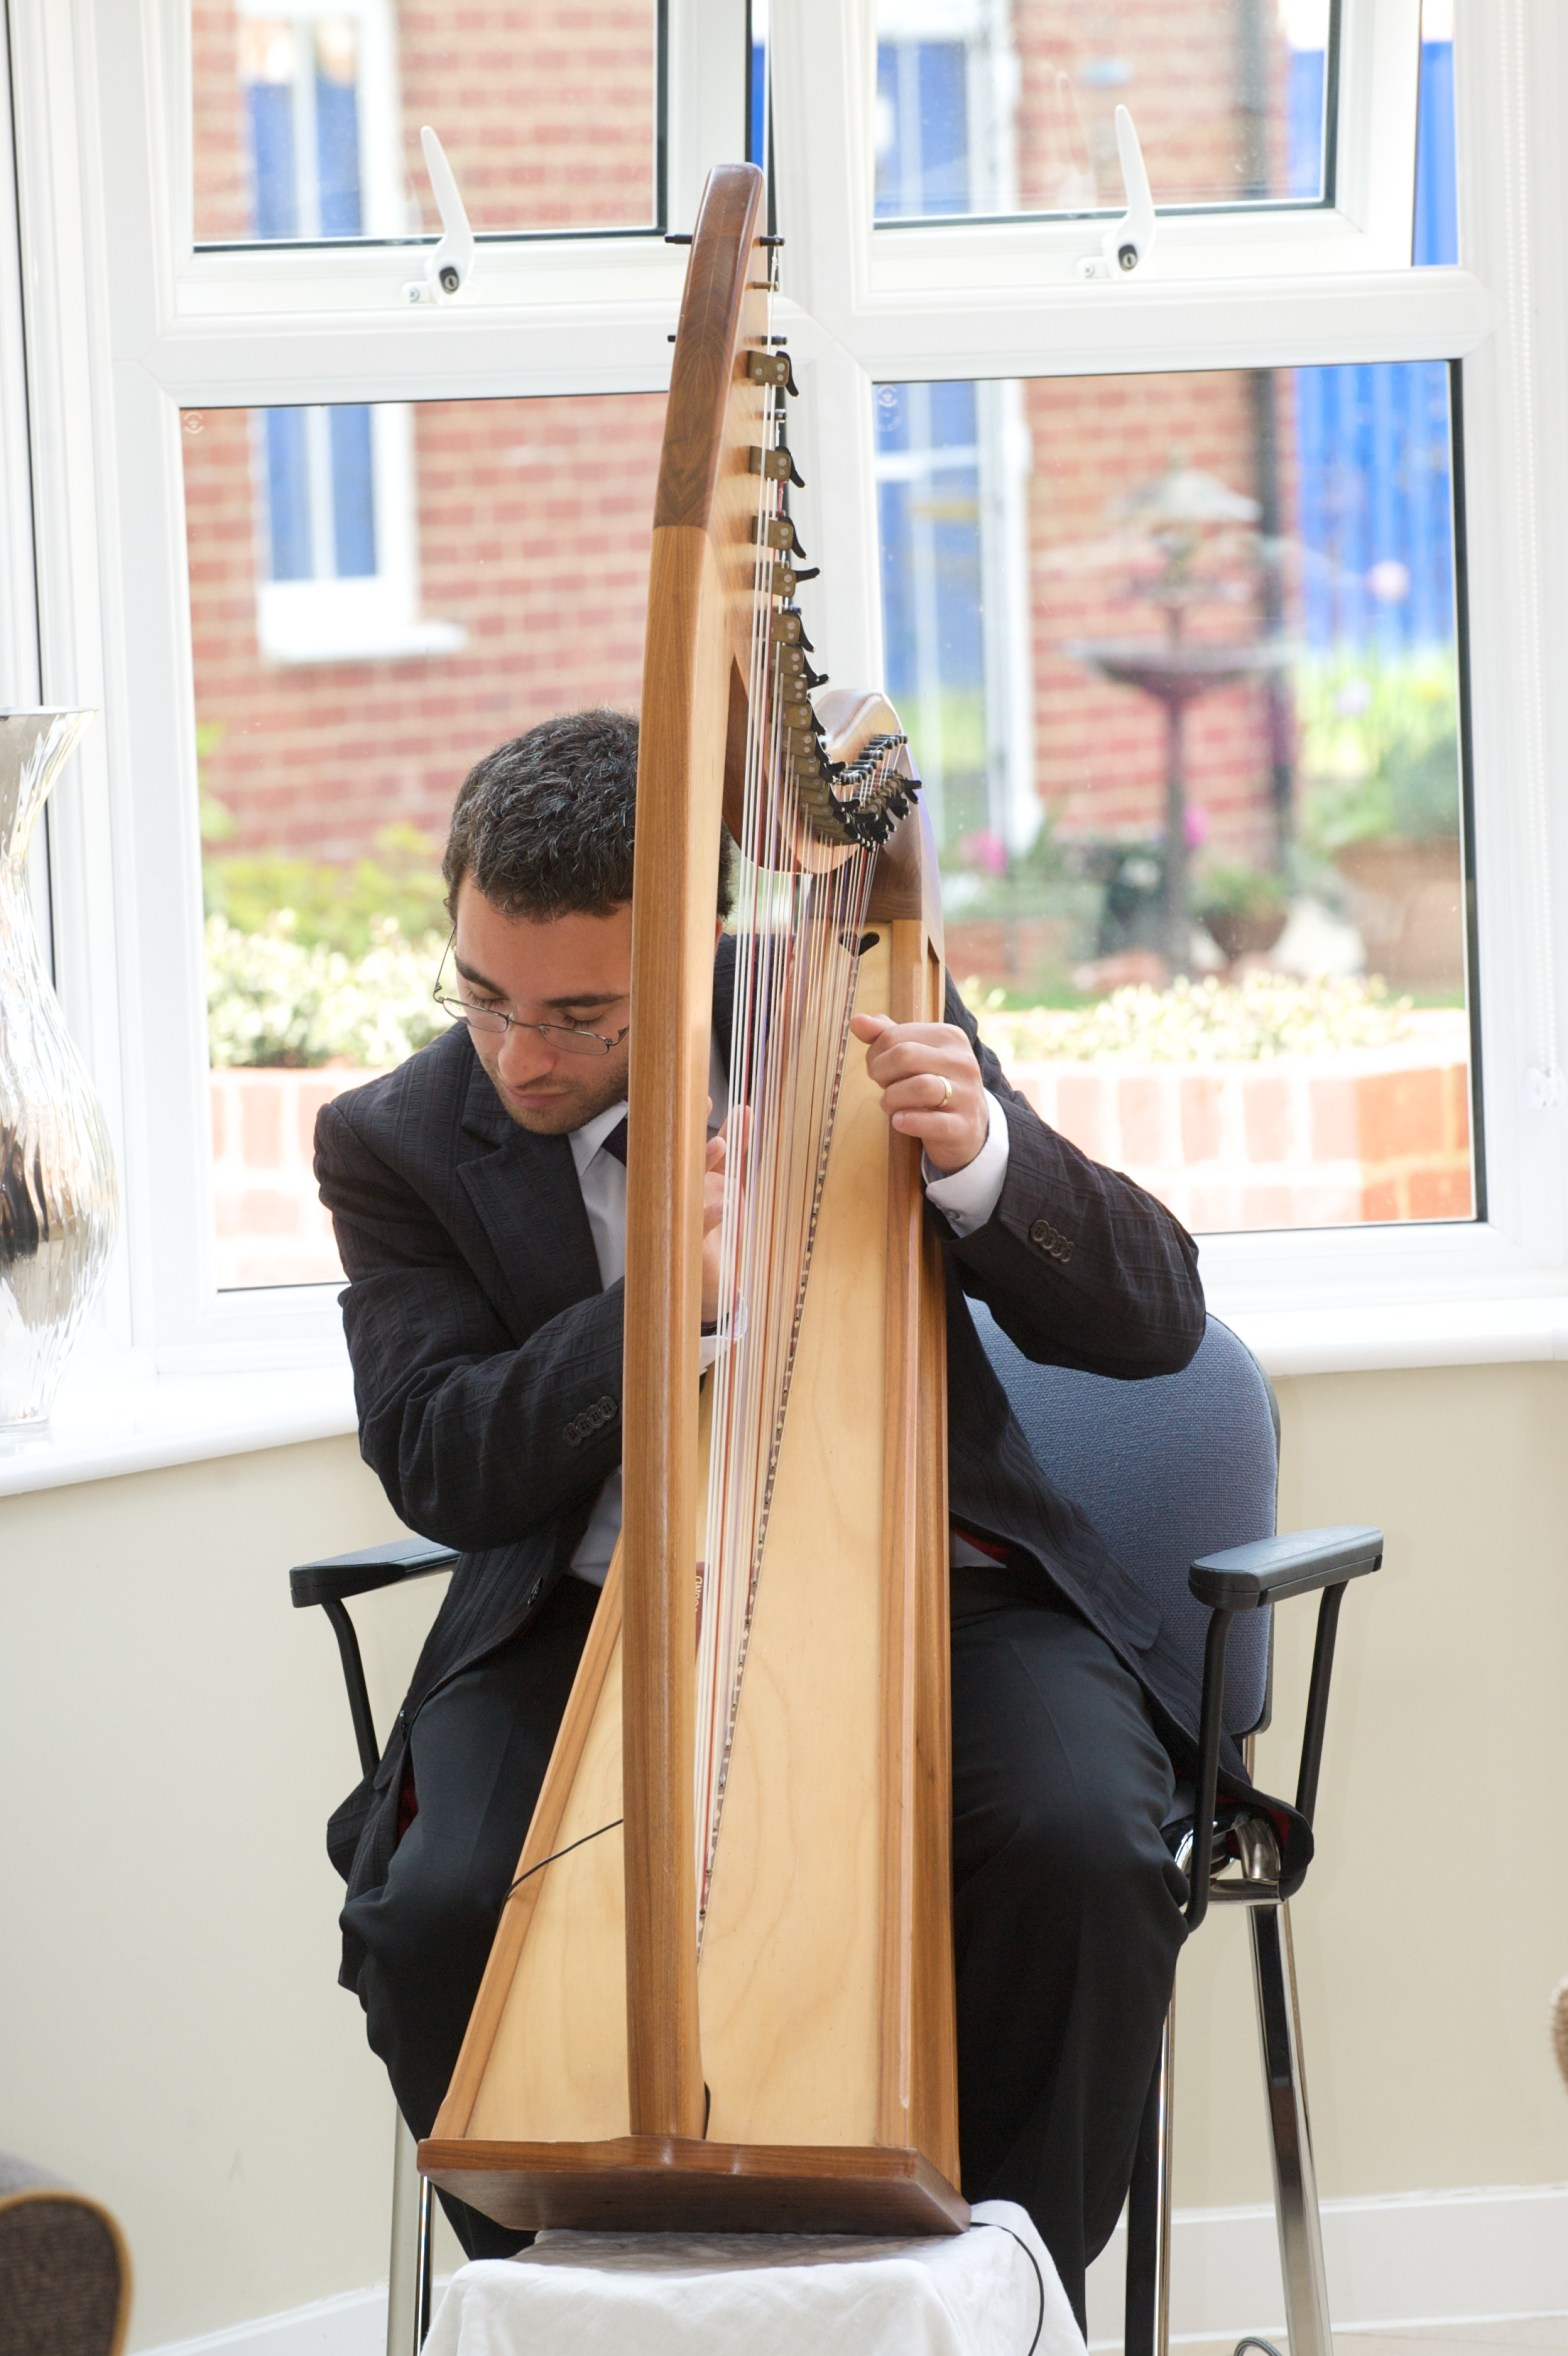 Mark Levin playing the harp